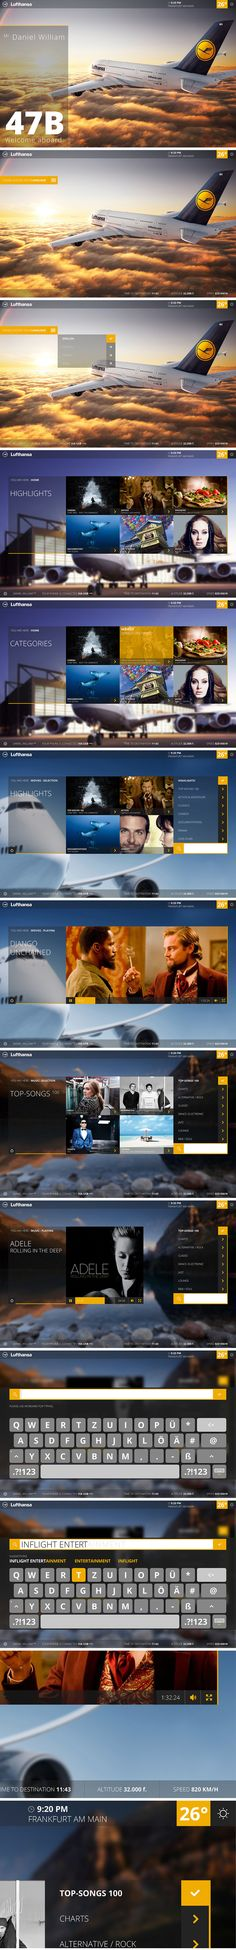 Lufthansa Inflight Entertainment System. #ui #ux #webdesign #lufthansa #app #graphic in Inspiration